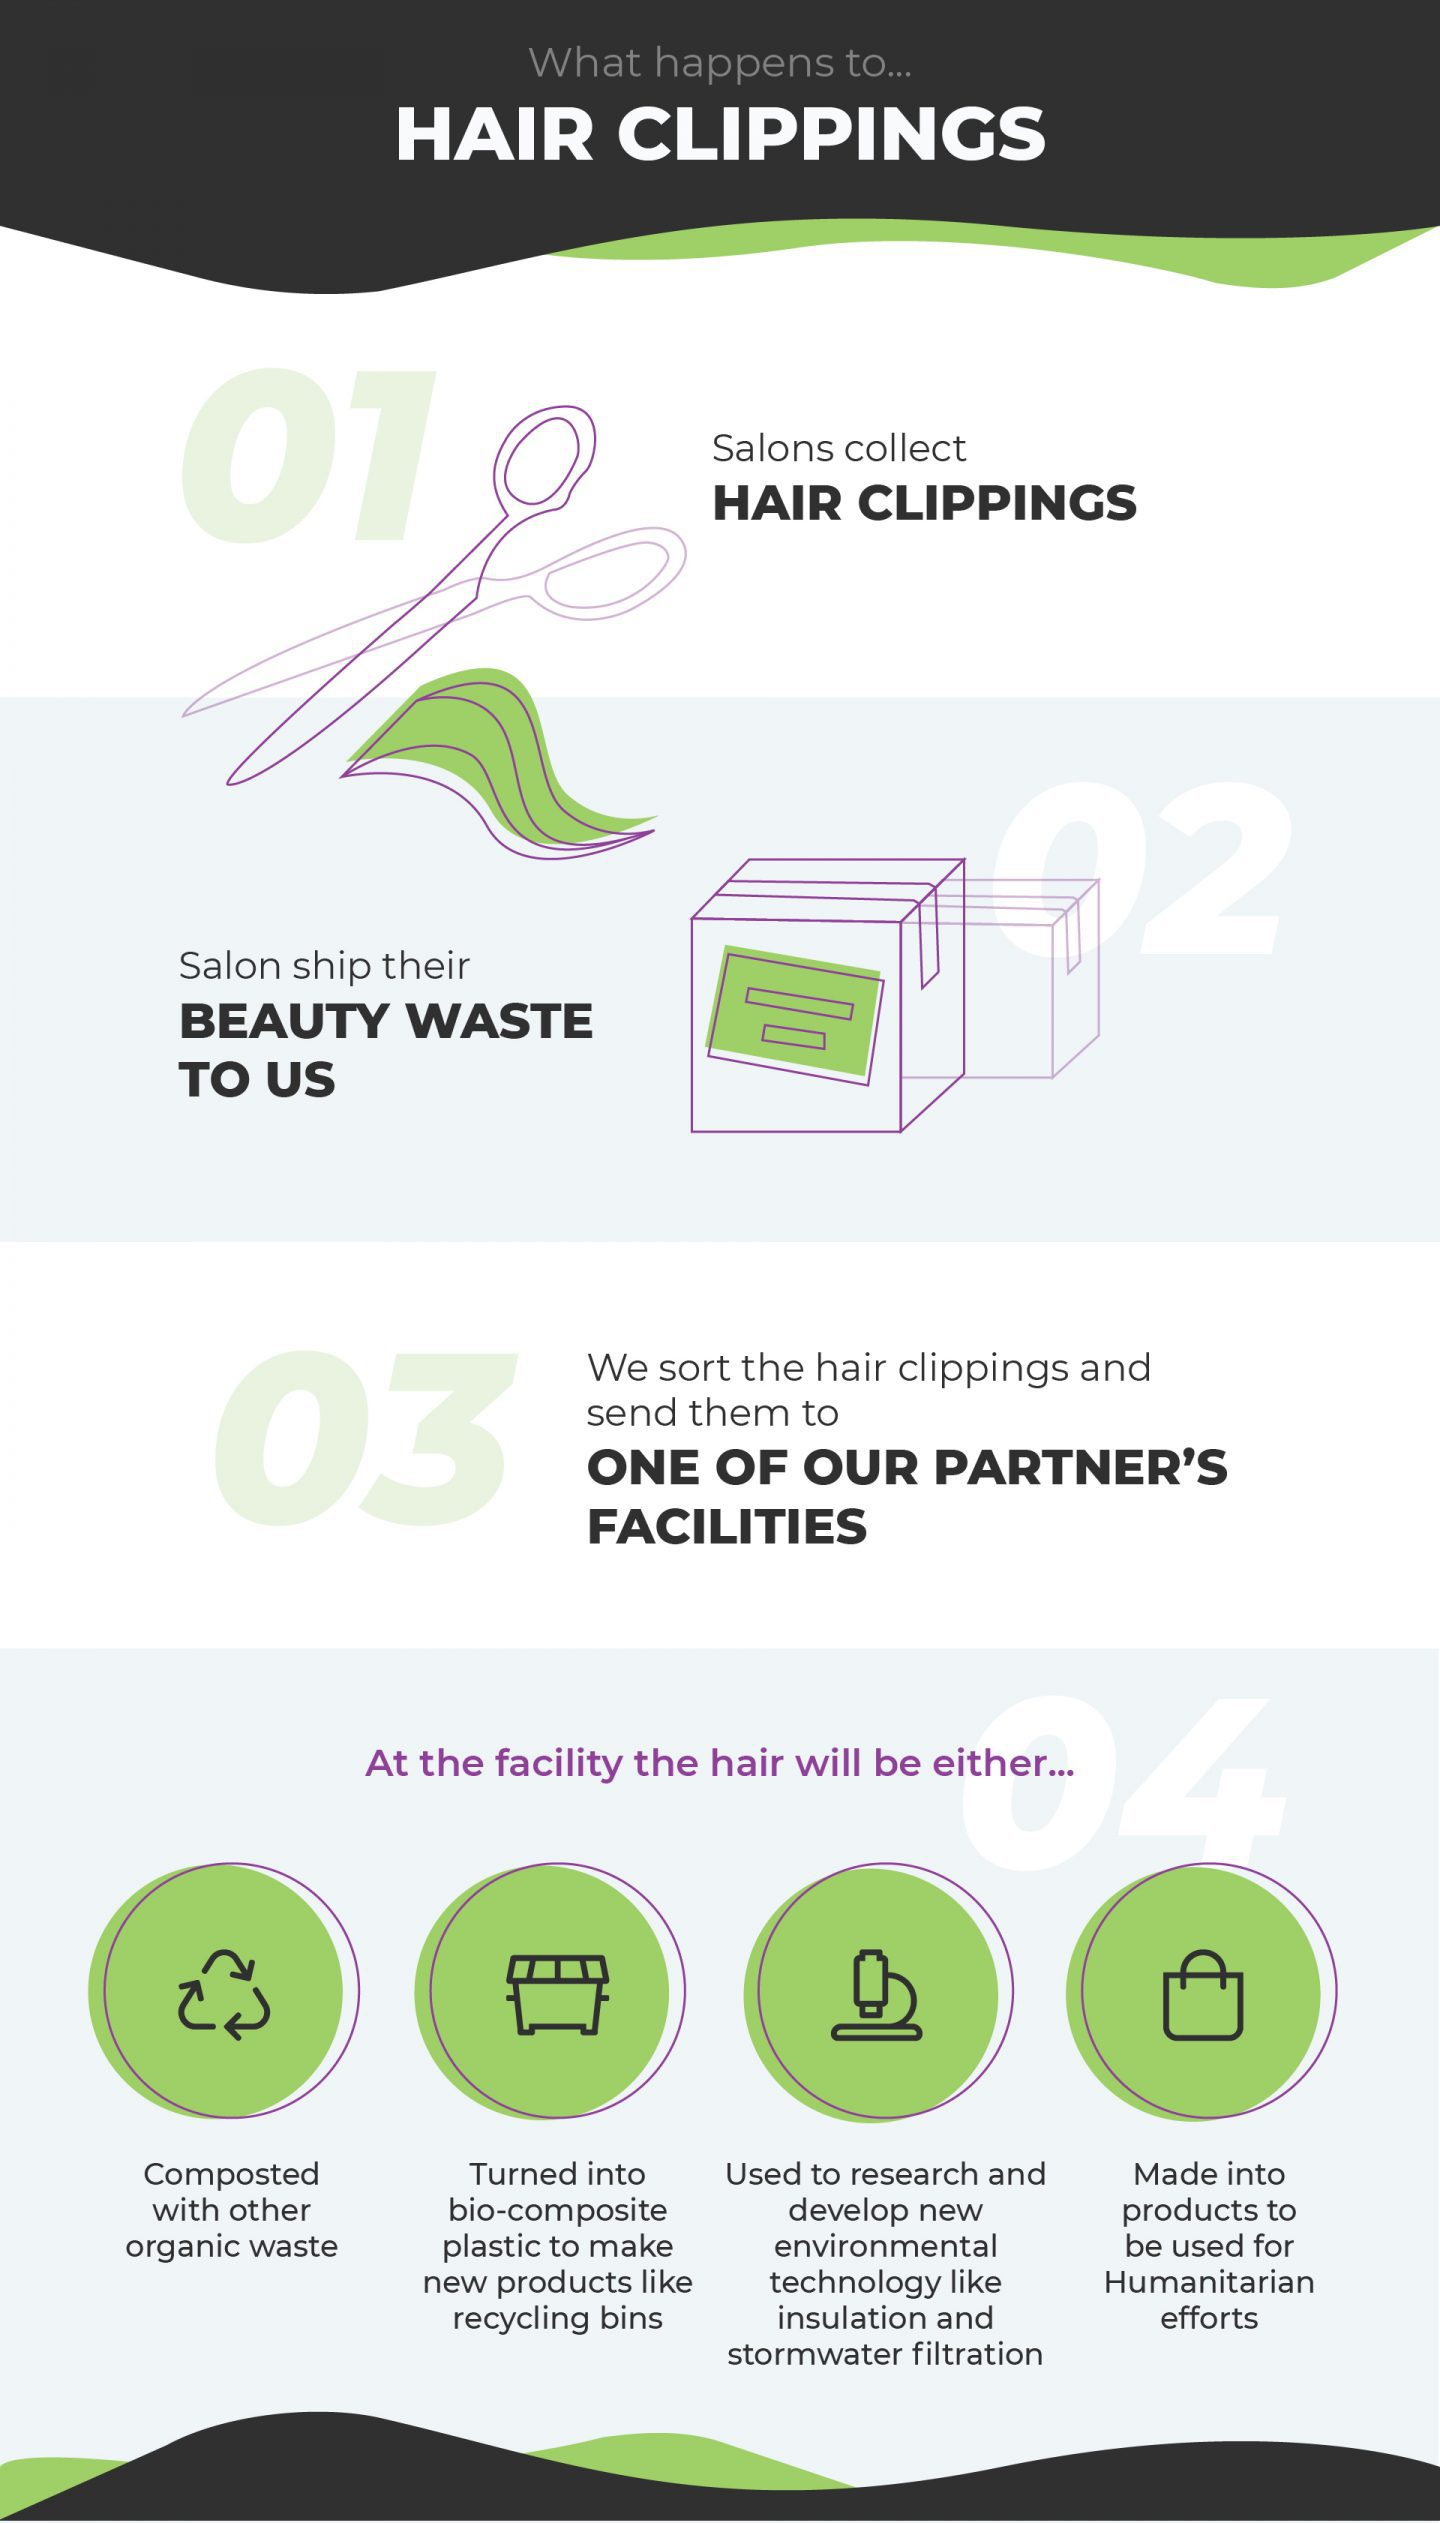 Hair Clippings infographic